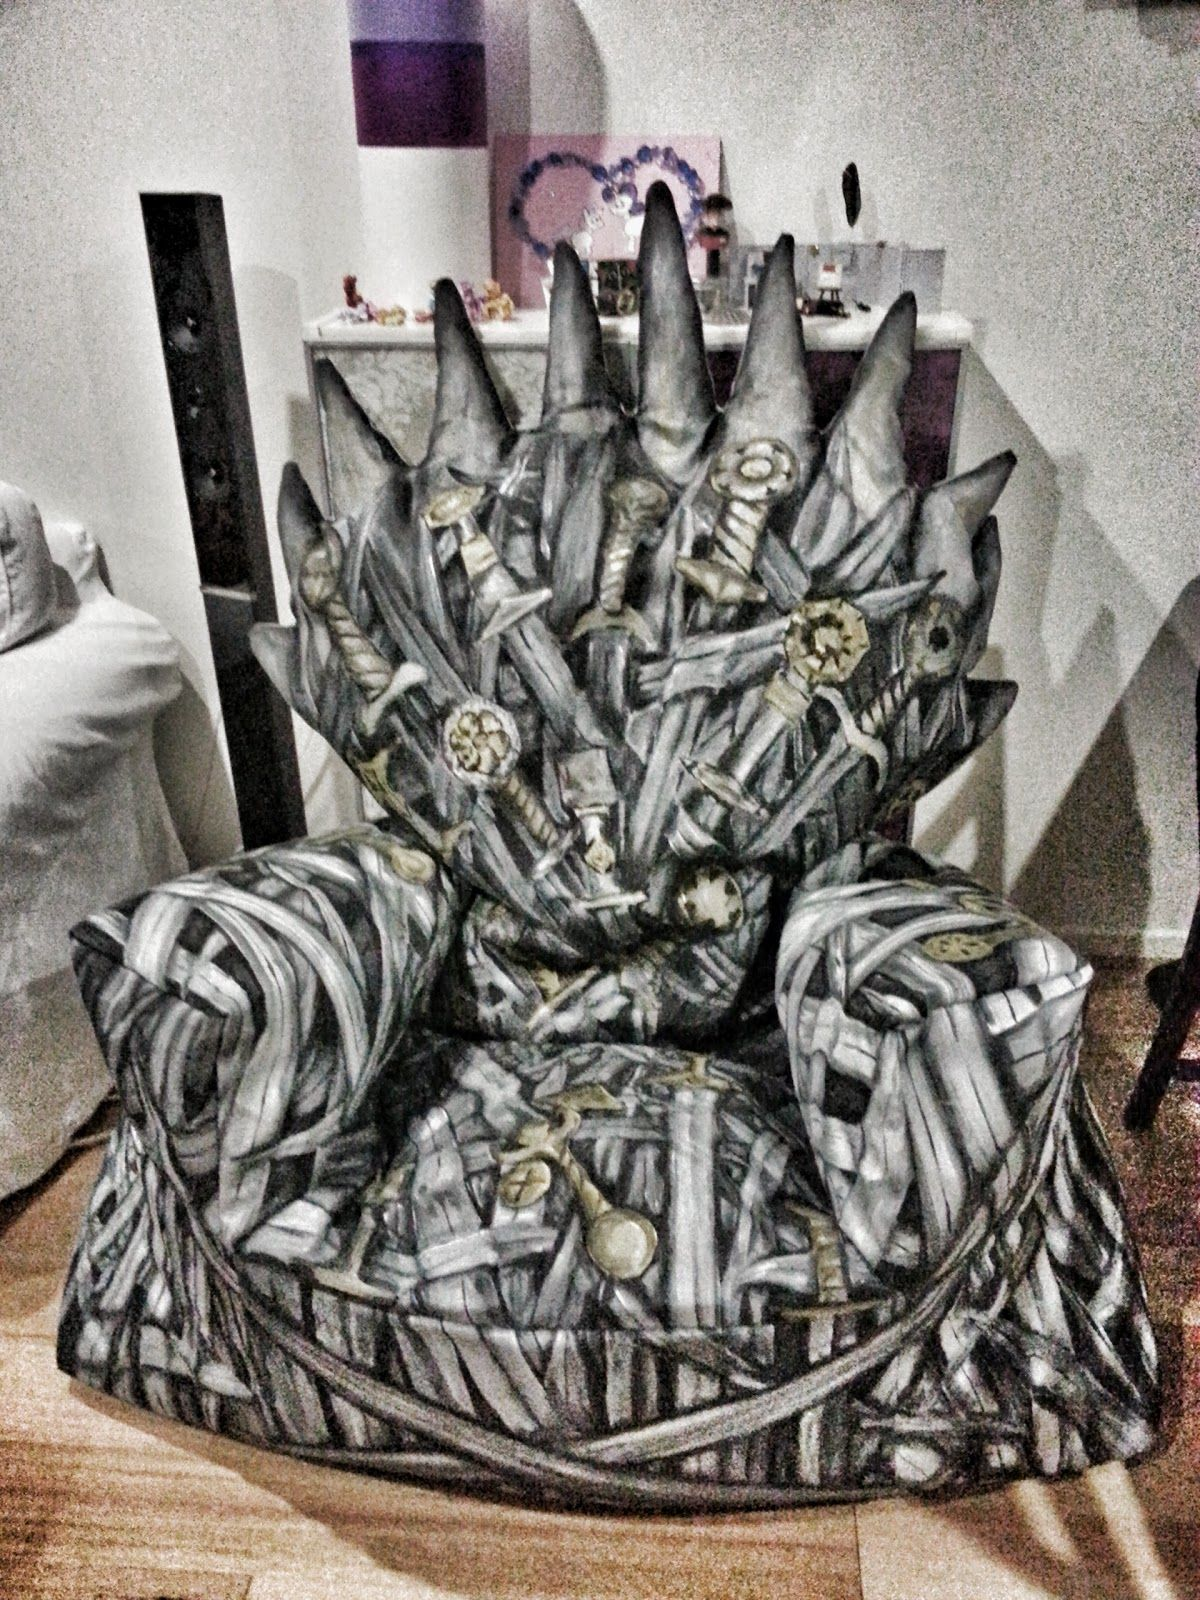 Iron Throne Chair Backboard Swivel View Diy Cover With Fabric And Foam Ingenious Ambitious Perhaps Someone On Etsy Can Make This For My Game Of Thrones Gatherings